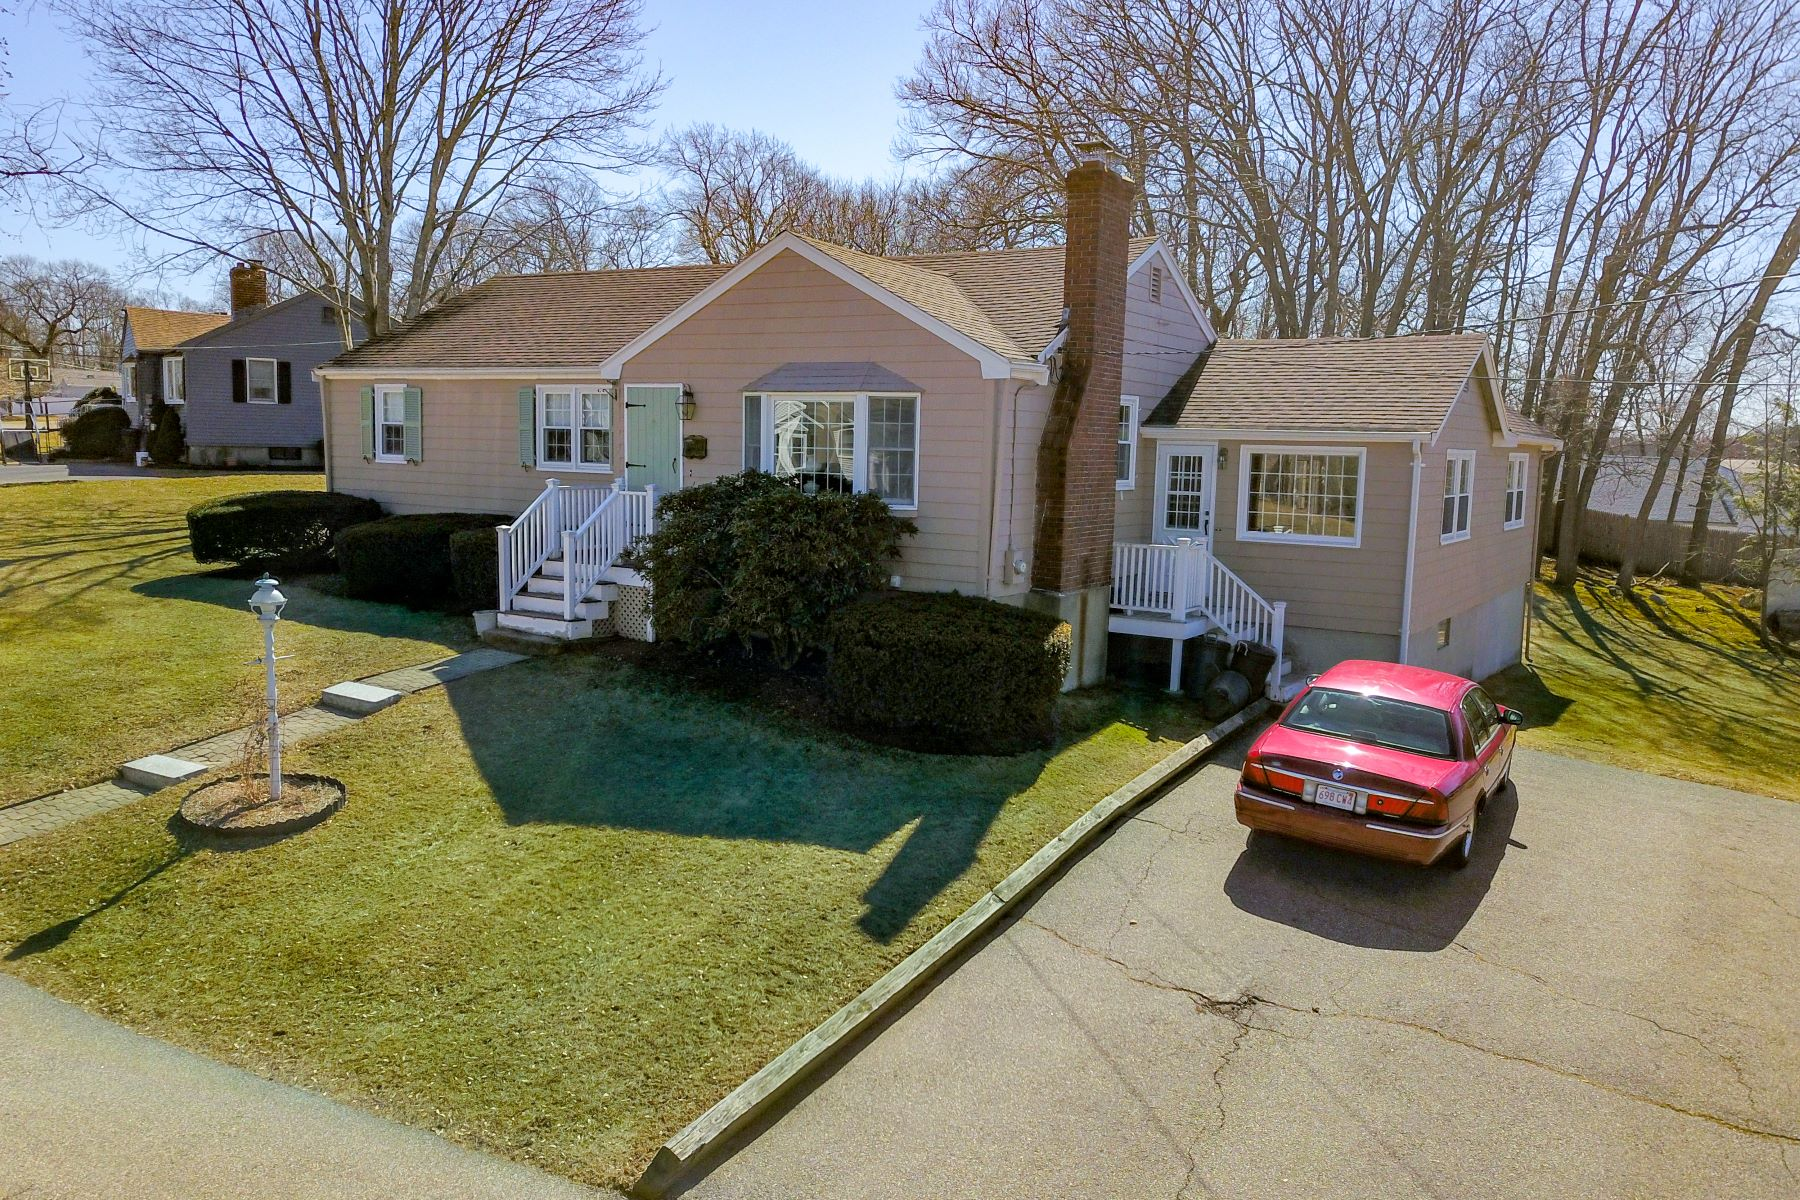 Single Family Home for Active at Sun-filled West Side Ranch 41 Duren Avenue Woburn, Massachusetts 01890 United States